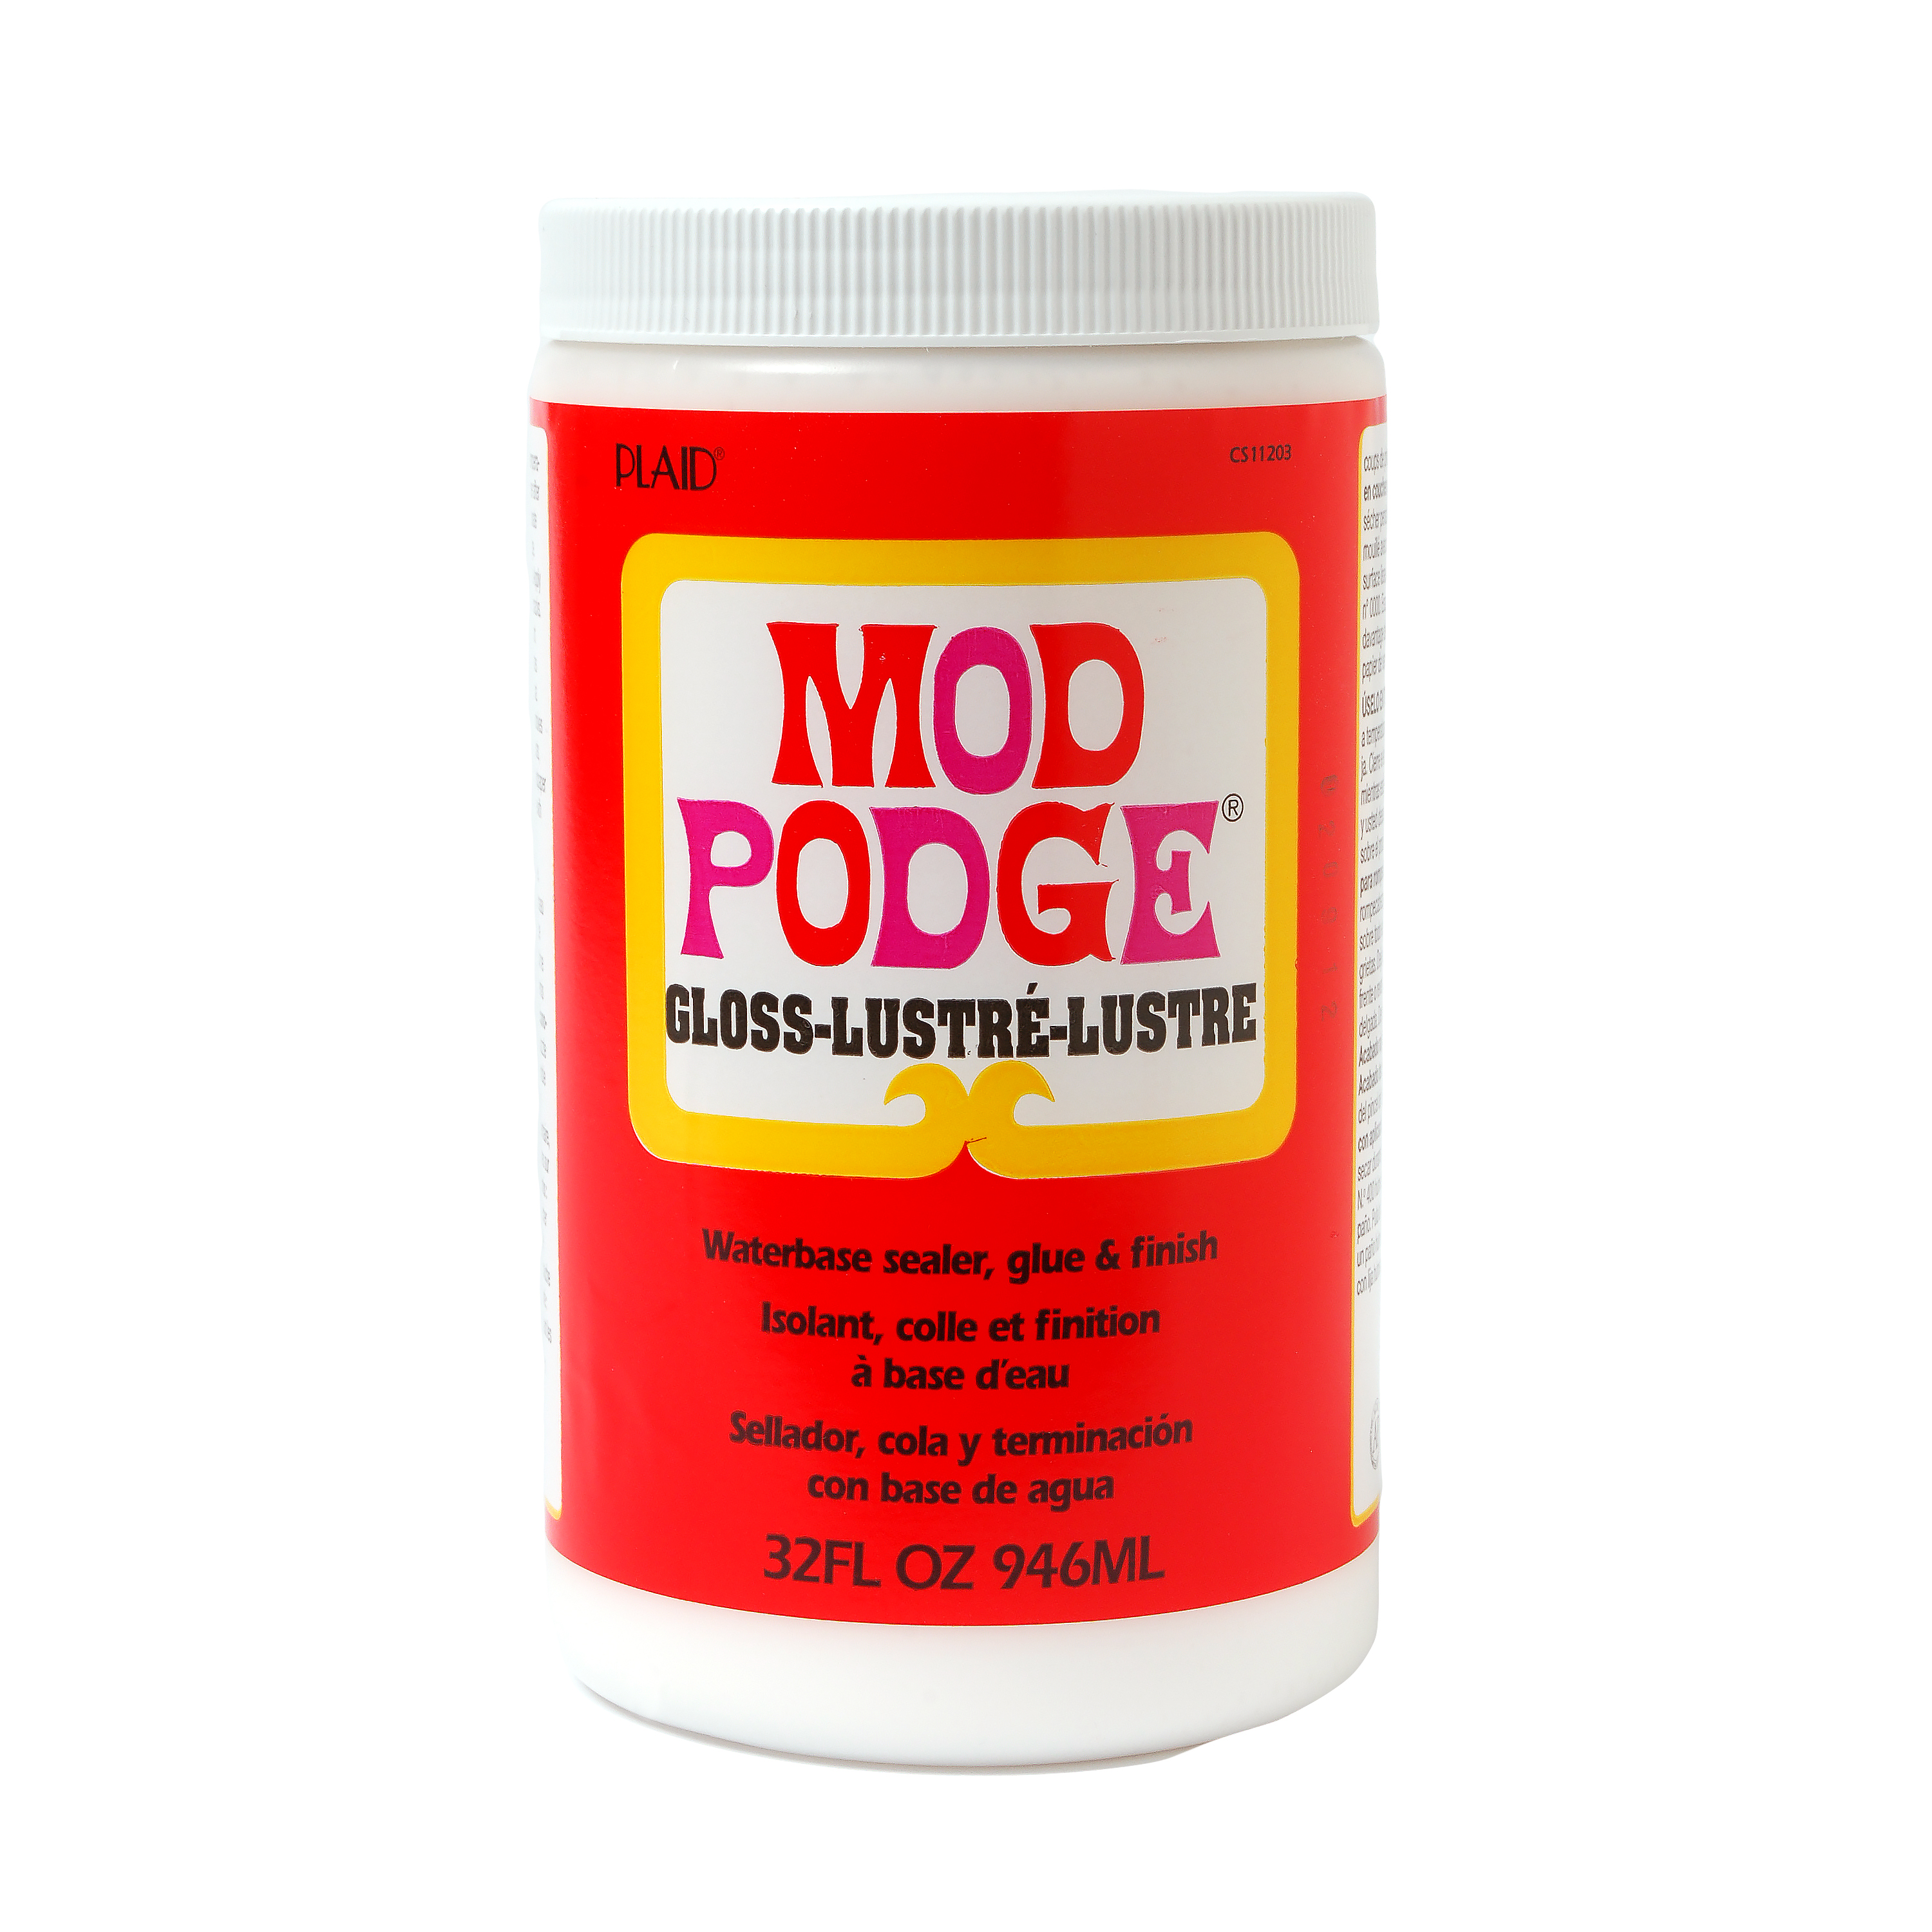 Mod   Podge Gloss, Glue, Sealer and Finish for Decoupage by Plaid, 32 oz.